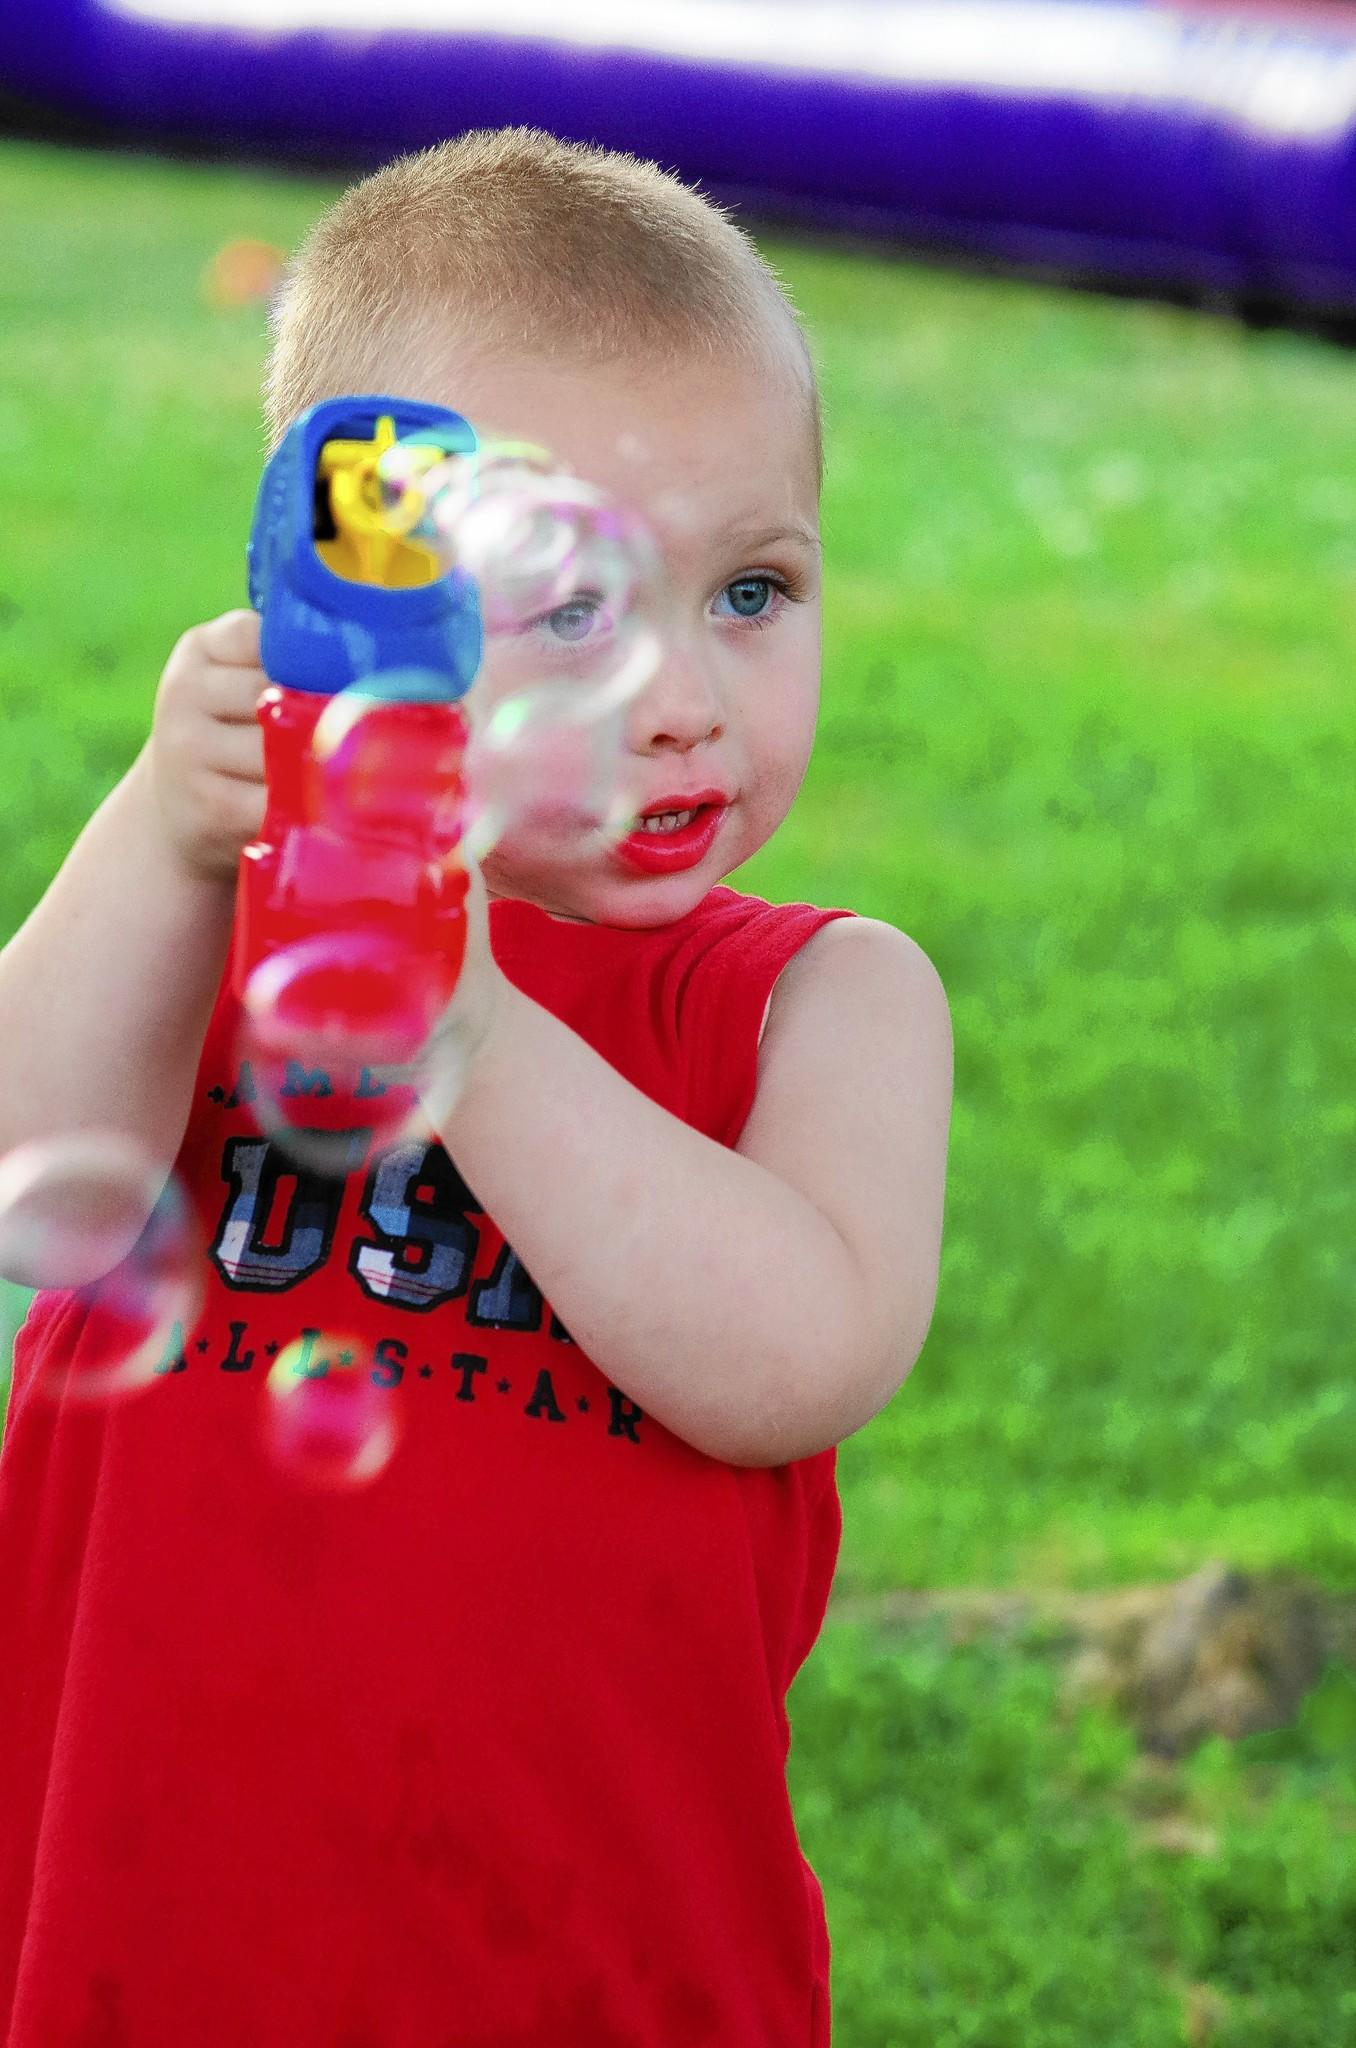 Aiden, 3, fires his bubble gun while waiting for the fireworks to begin. Photo by Steve Smith.